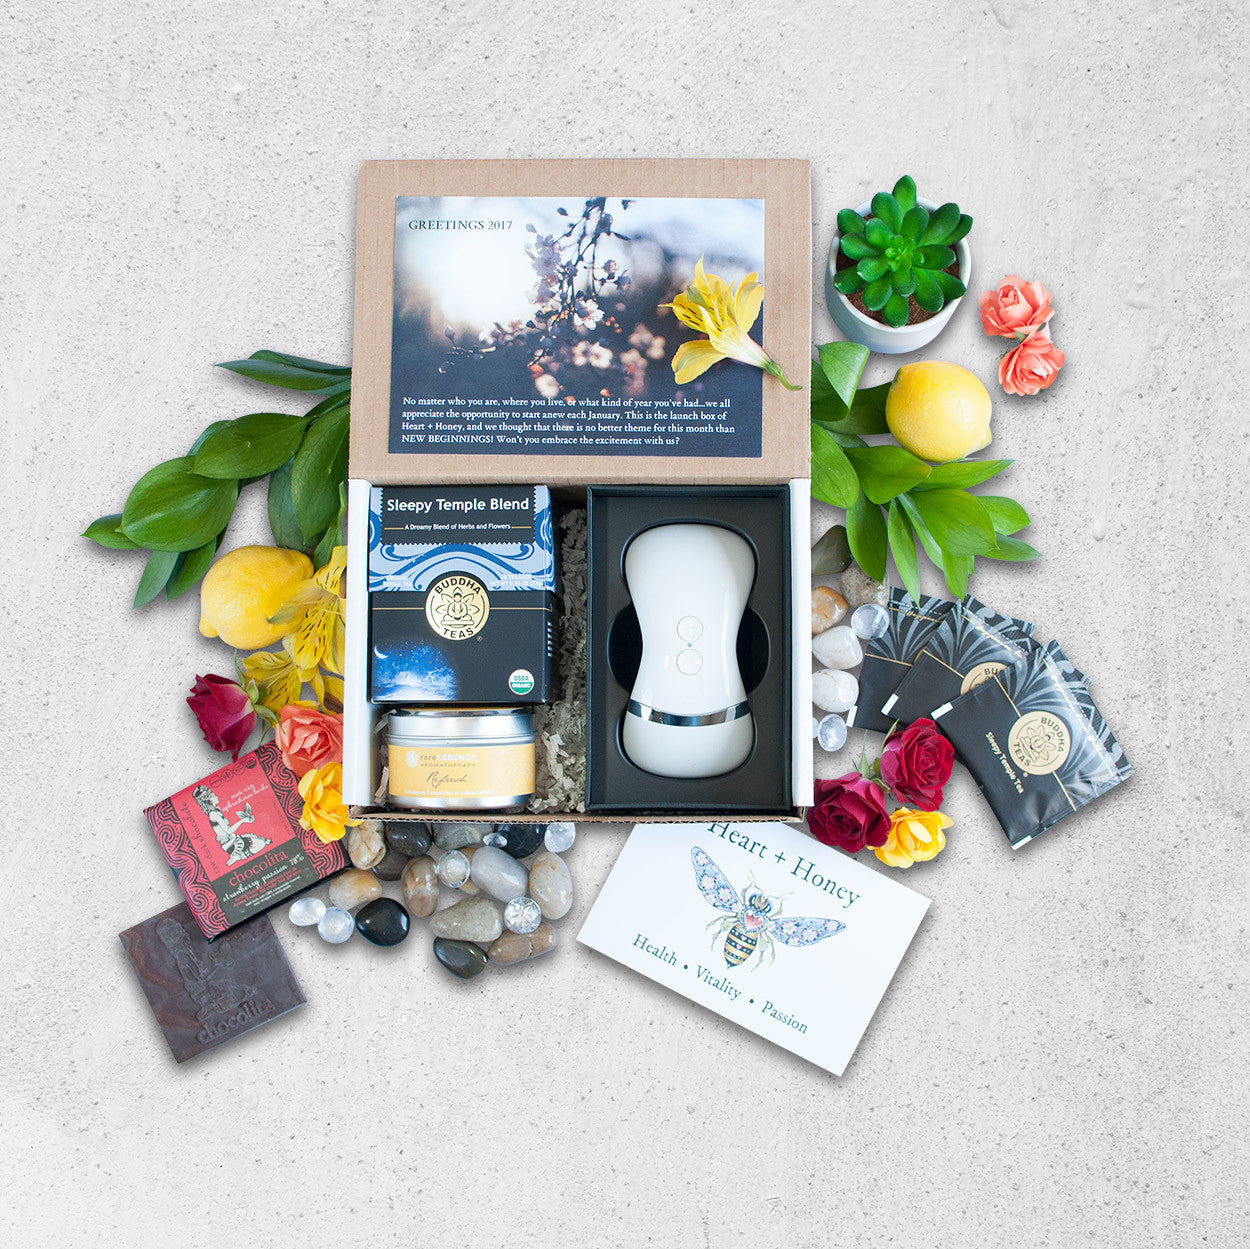 Bumble Bee Box Six-Month Subscription